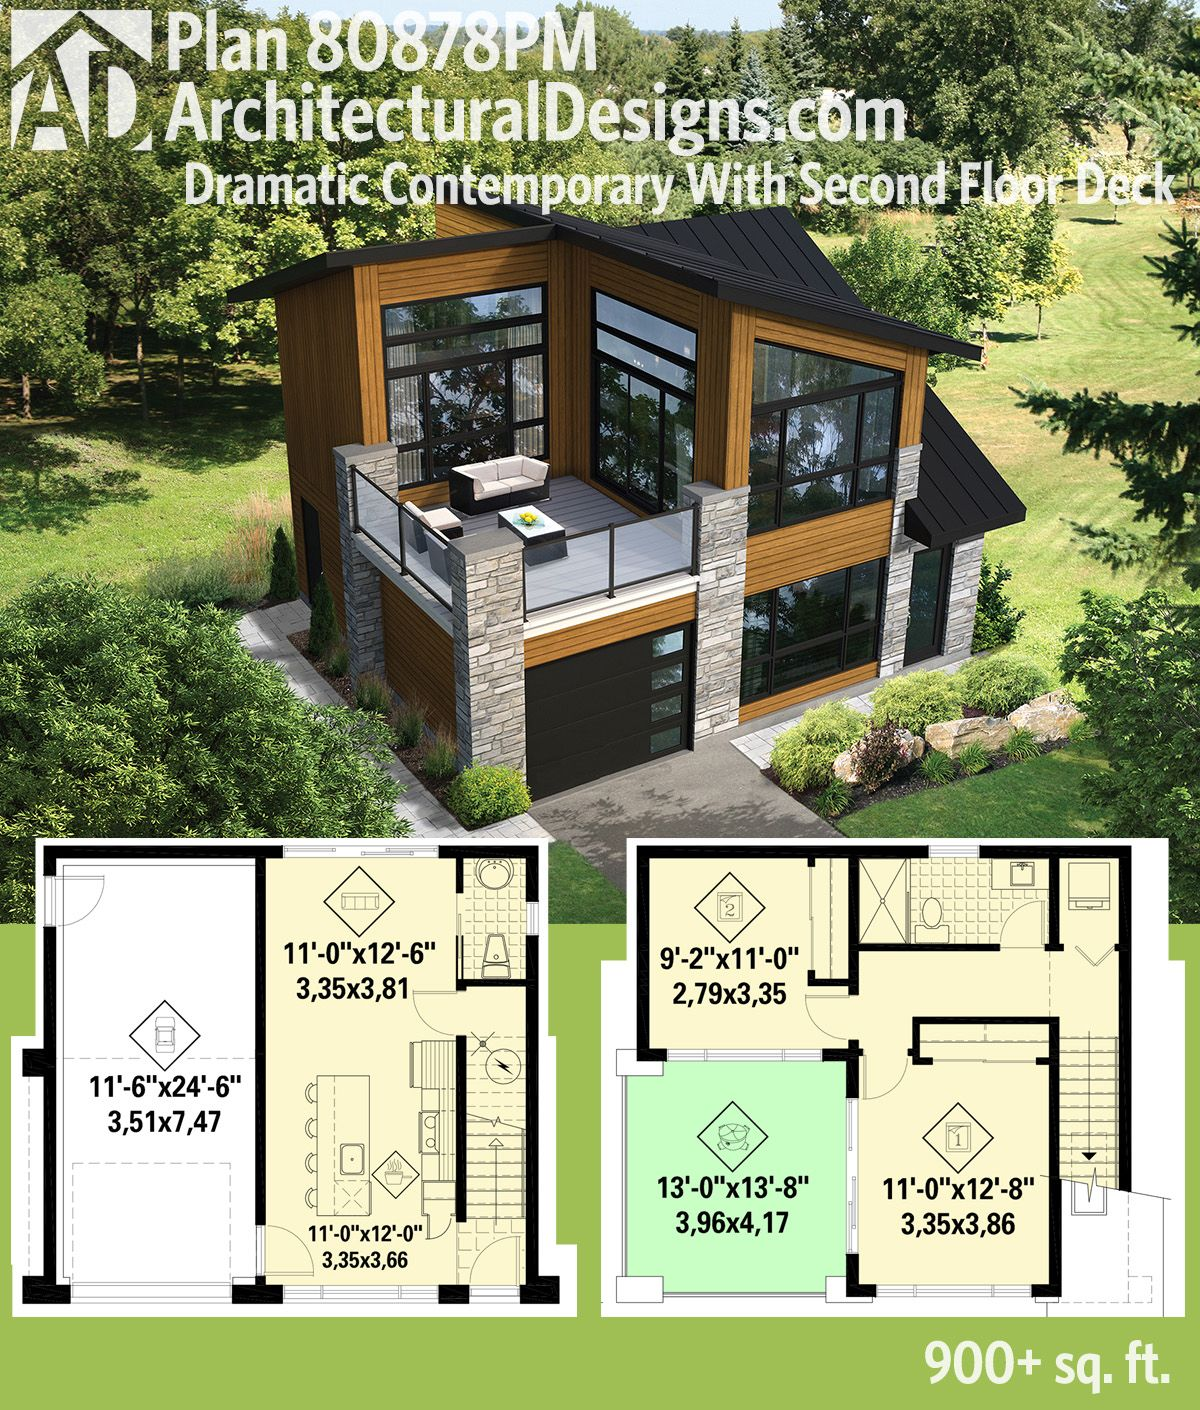 I would have a covered porch and not such big windows. Architectural Designs  Modern House Plan 80878PM.